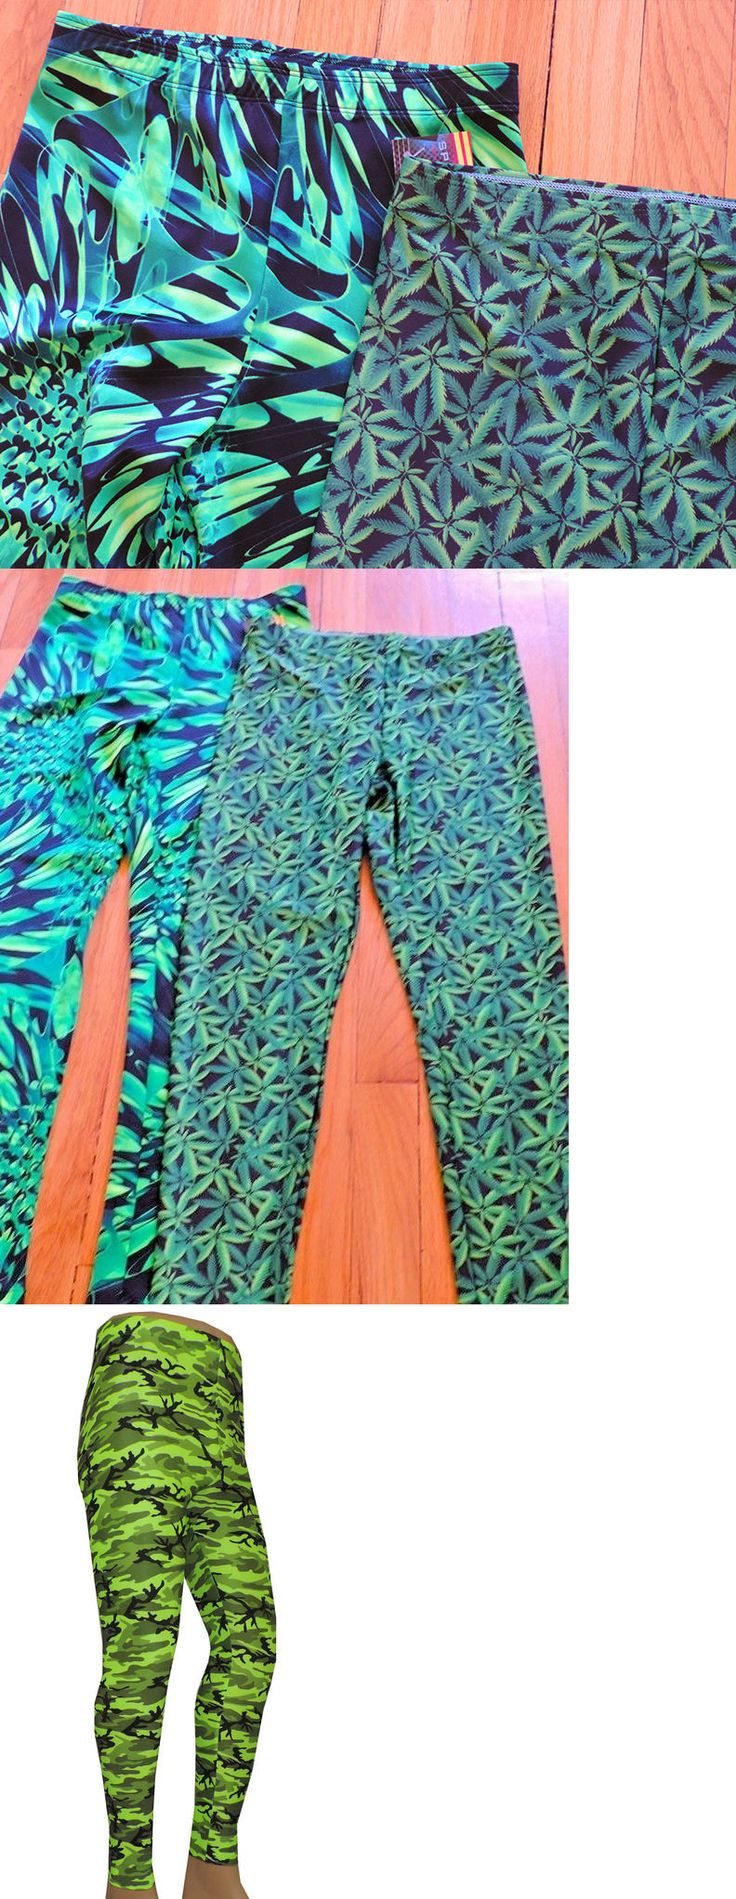 Clothing 79796: Lot 2 Medium Wrestling Tights Pot Leaf Abstract Green Festival Edm Cos Play -> BUY IT NOW ONLY: $40 on eBay!